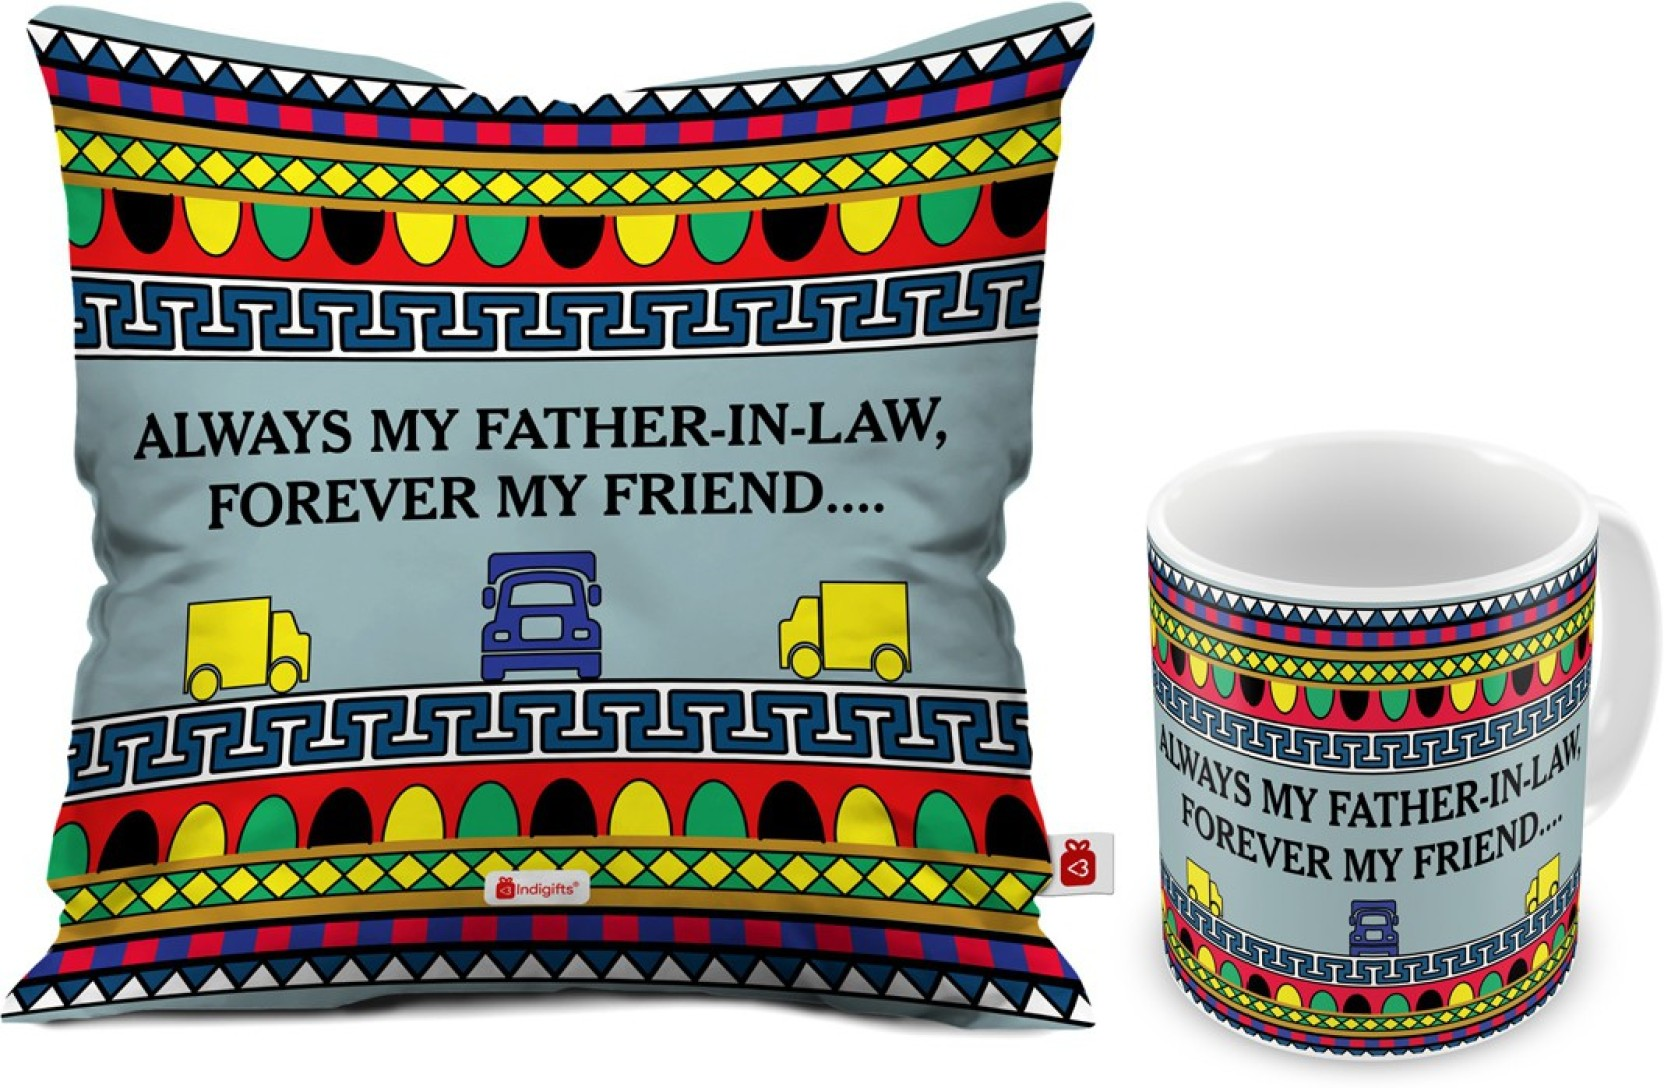 Indigifts Gift For Father In Law Fathers Birthday Parents